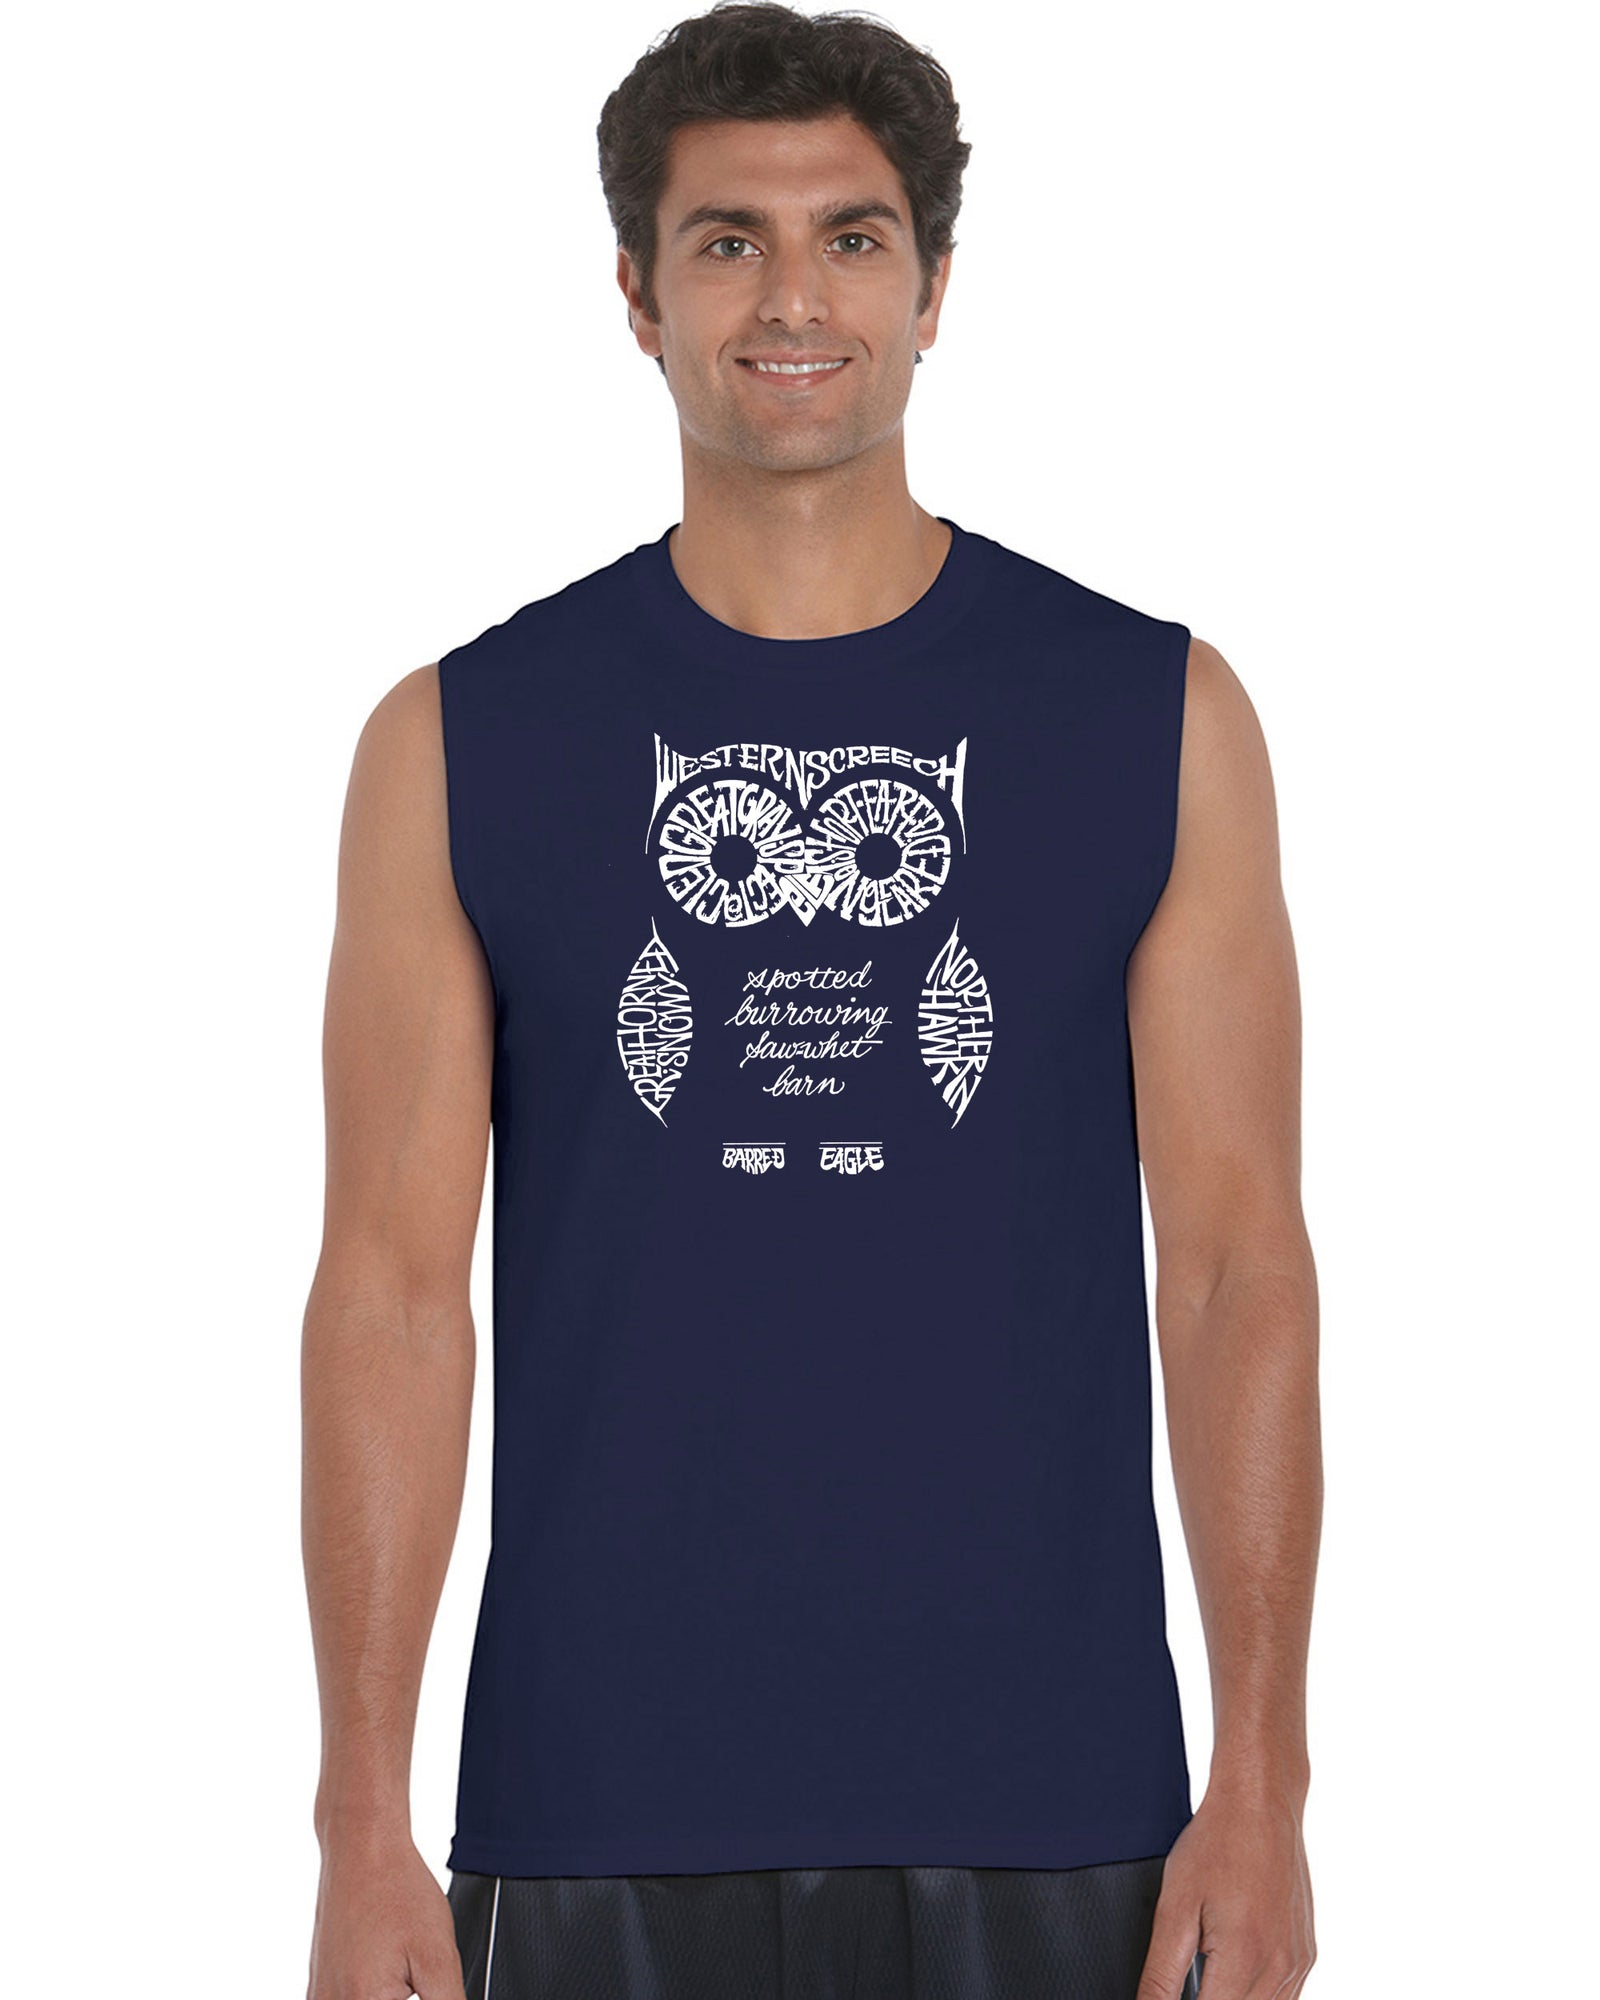 Men's Sleeveless T-shirt - Owl